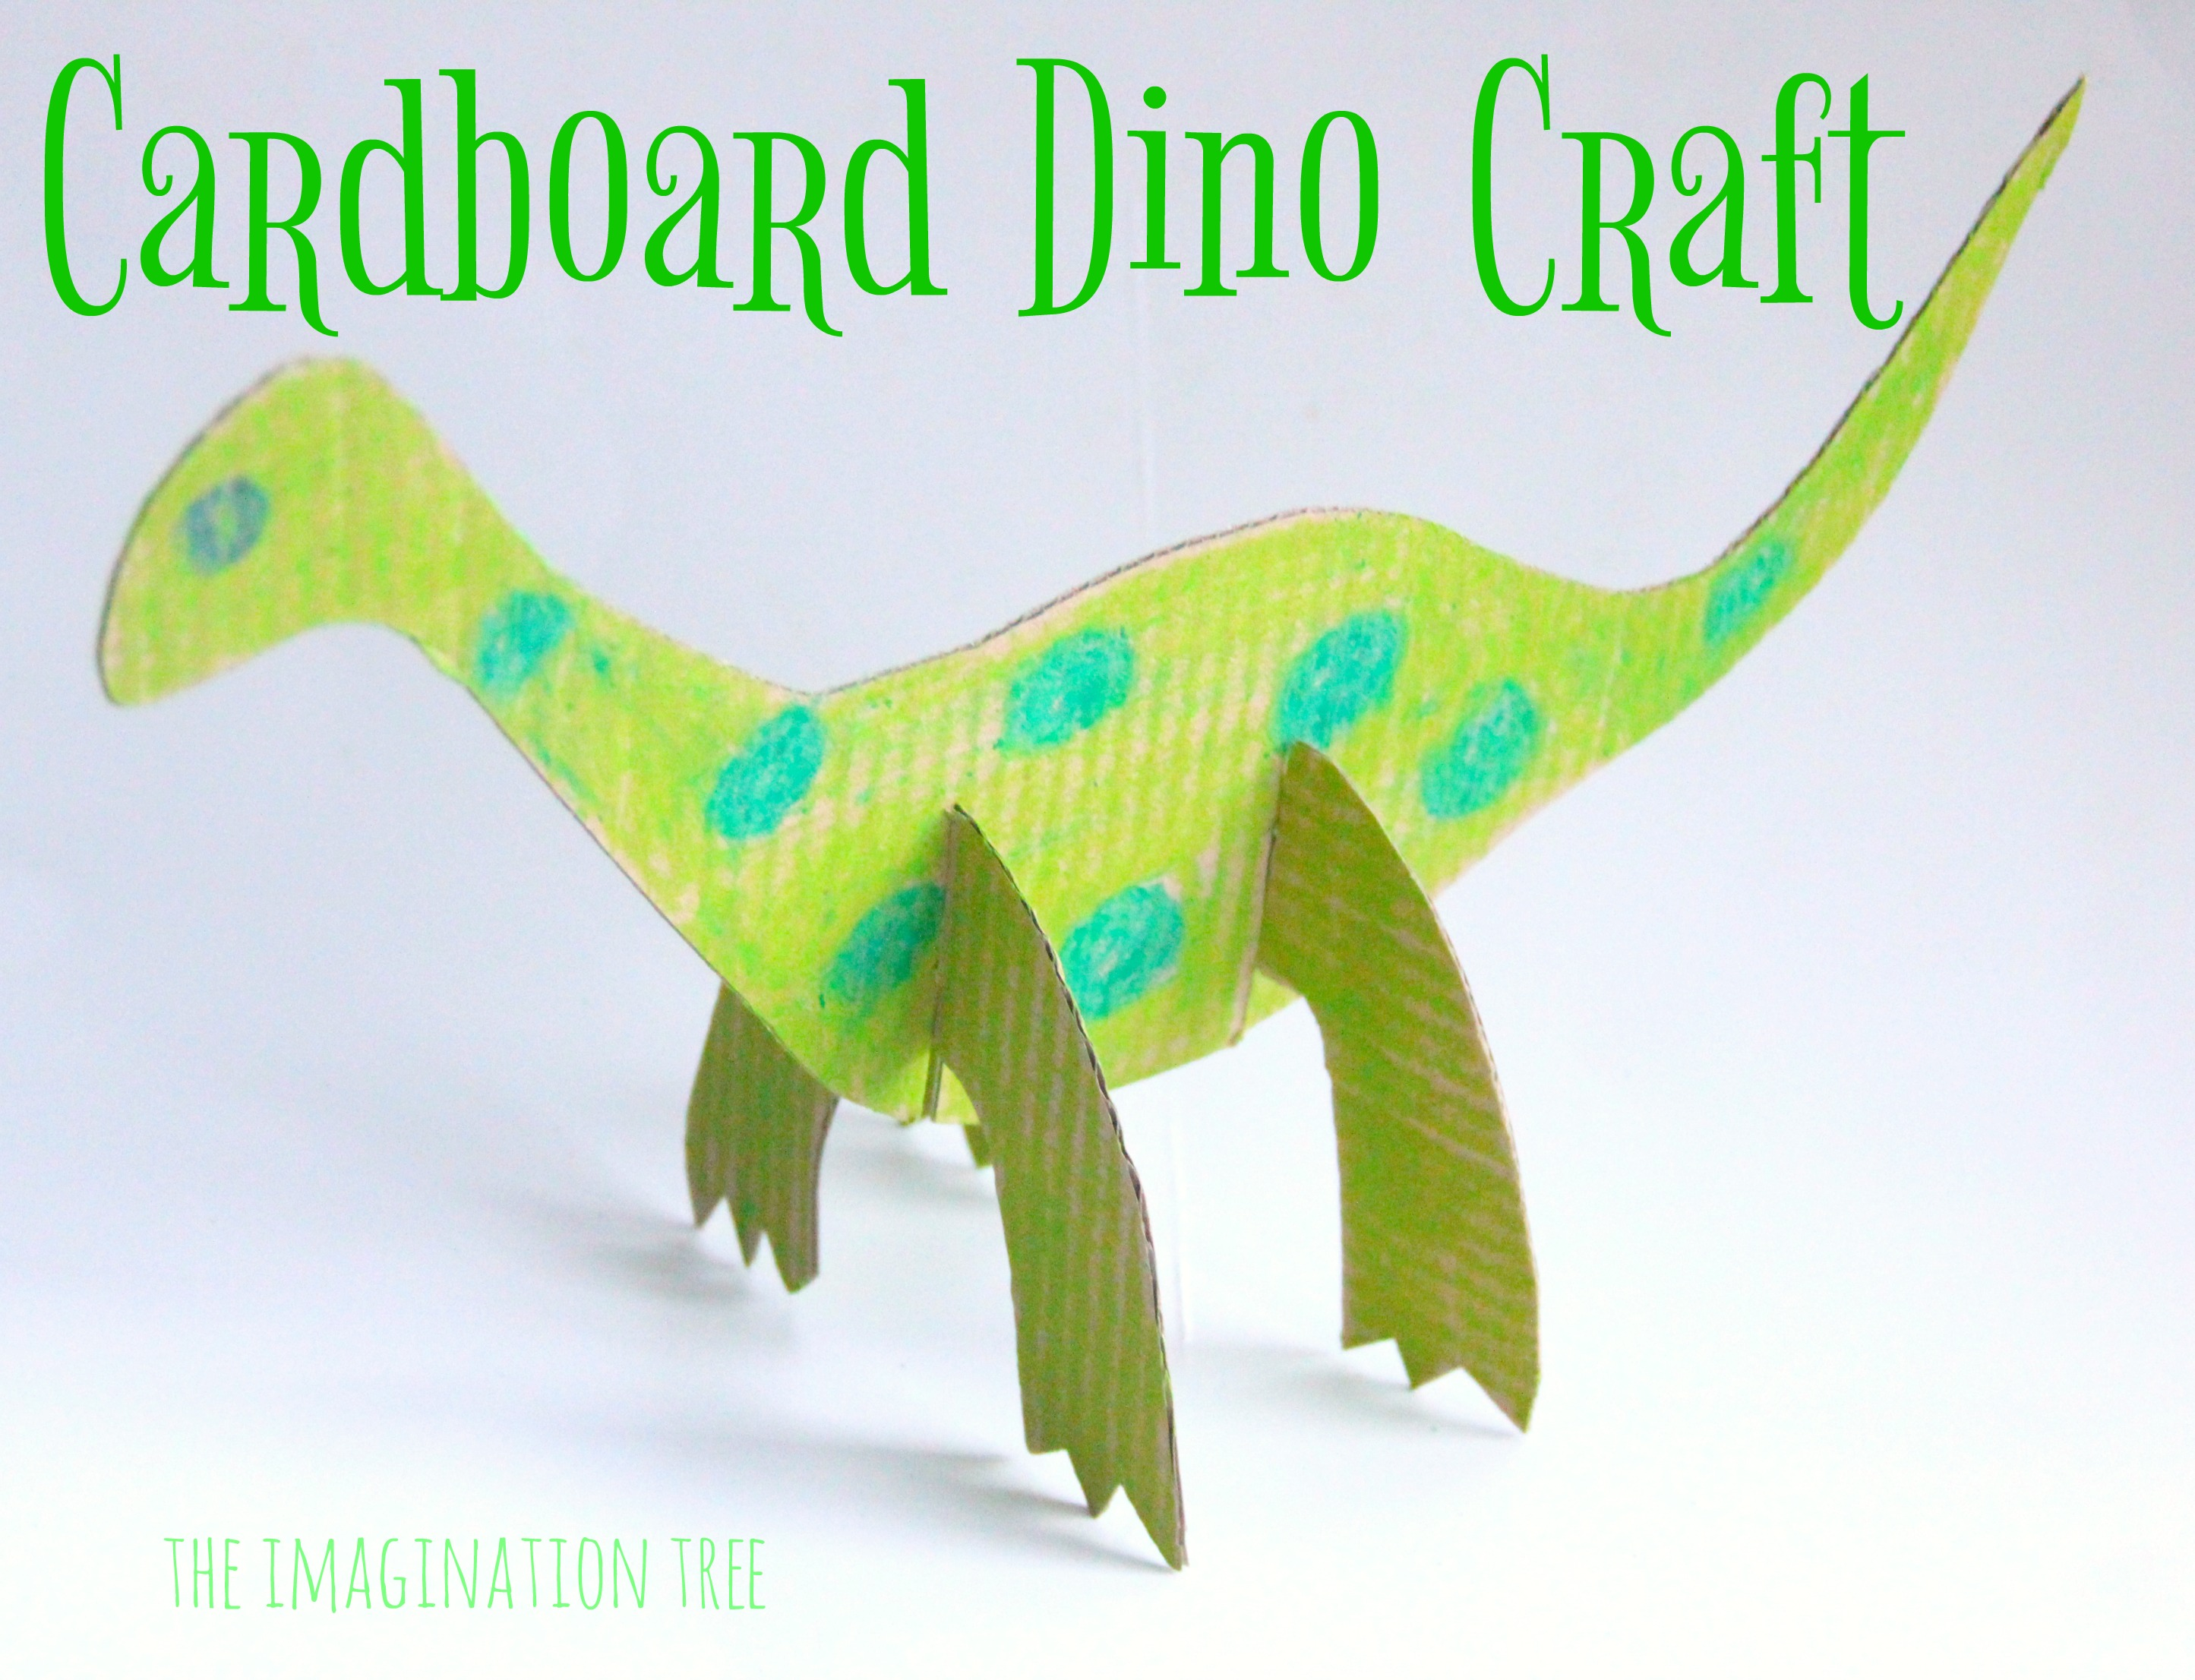 Dinosaur arts and crafts - Cardboard Dinosaur Craft For Kids